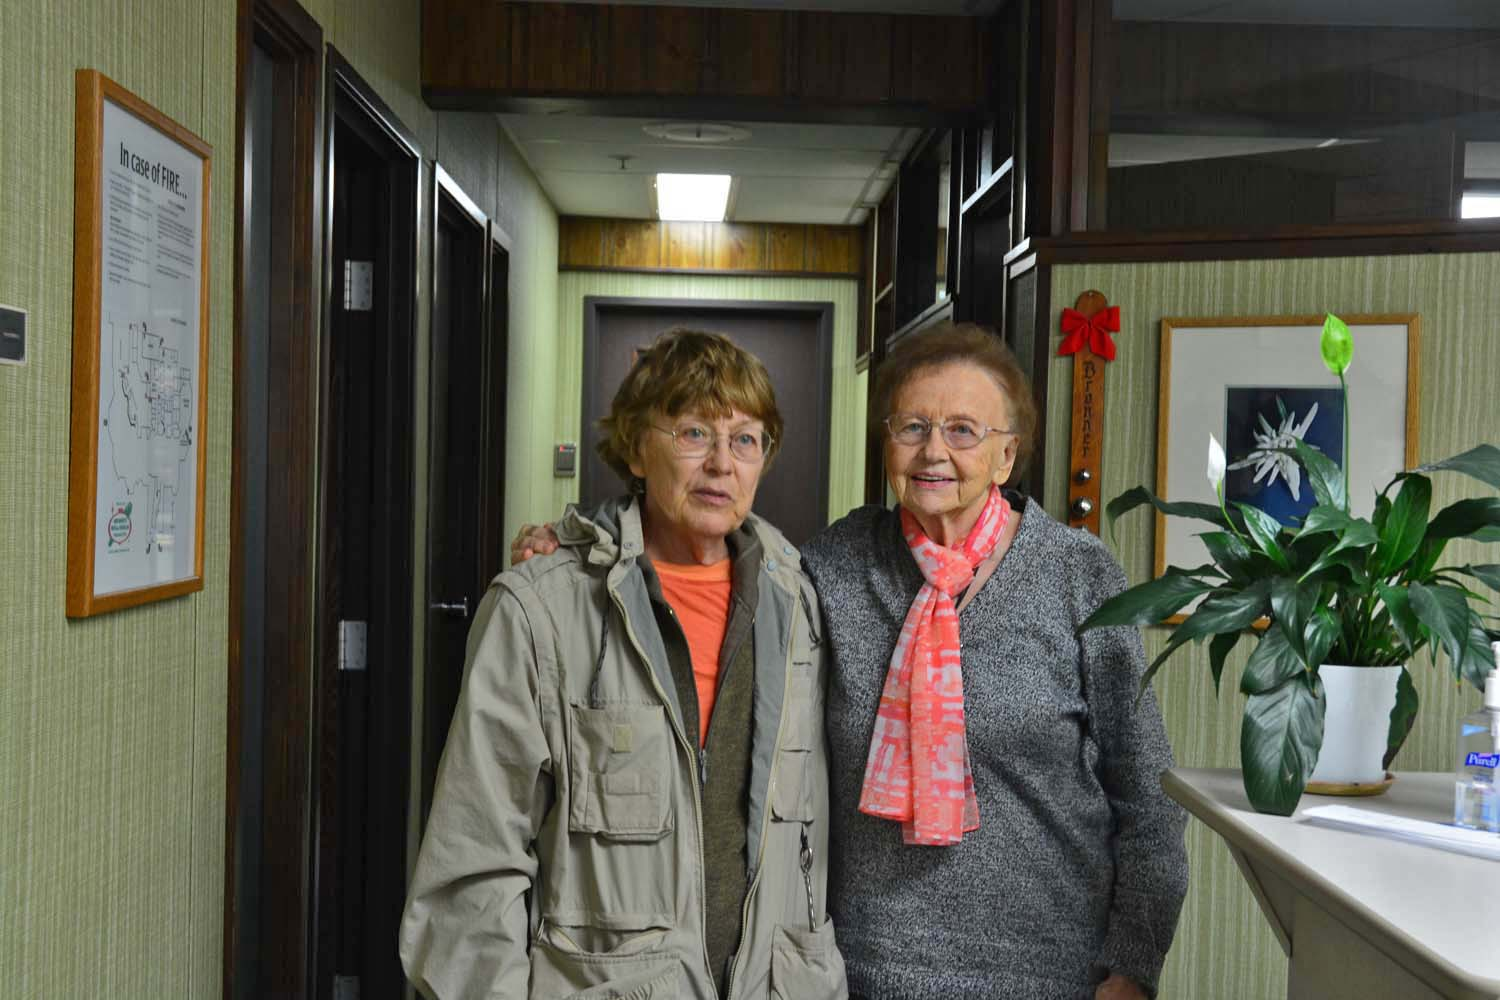 Jan and Irene Bronner